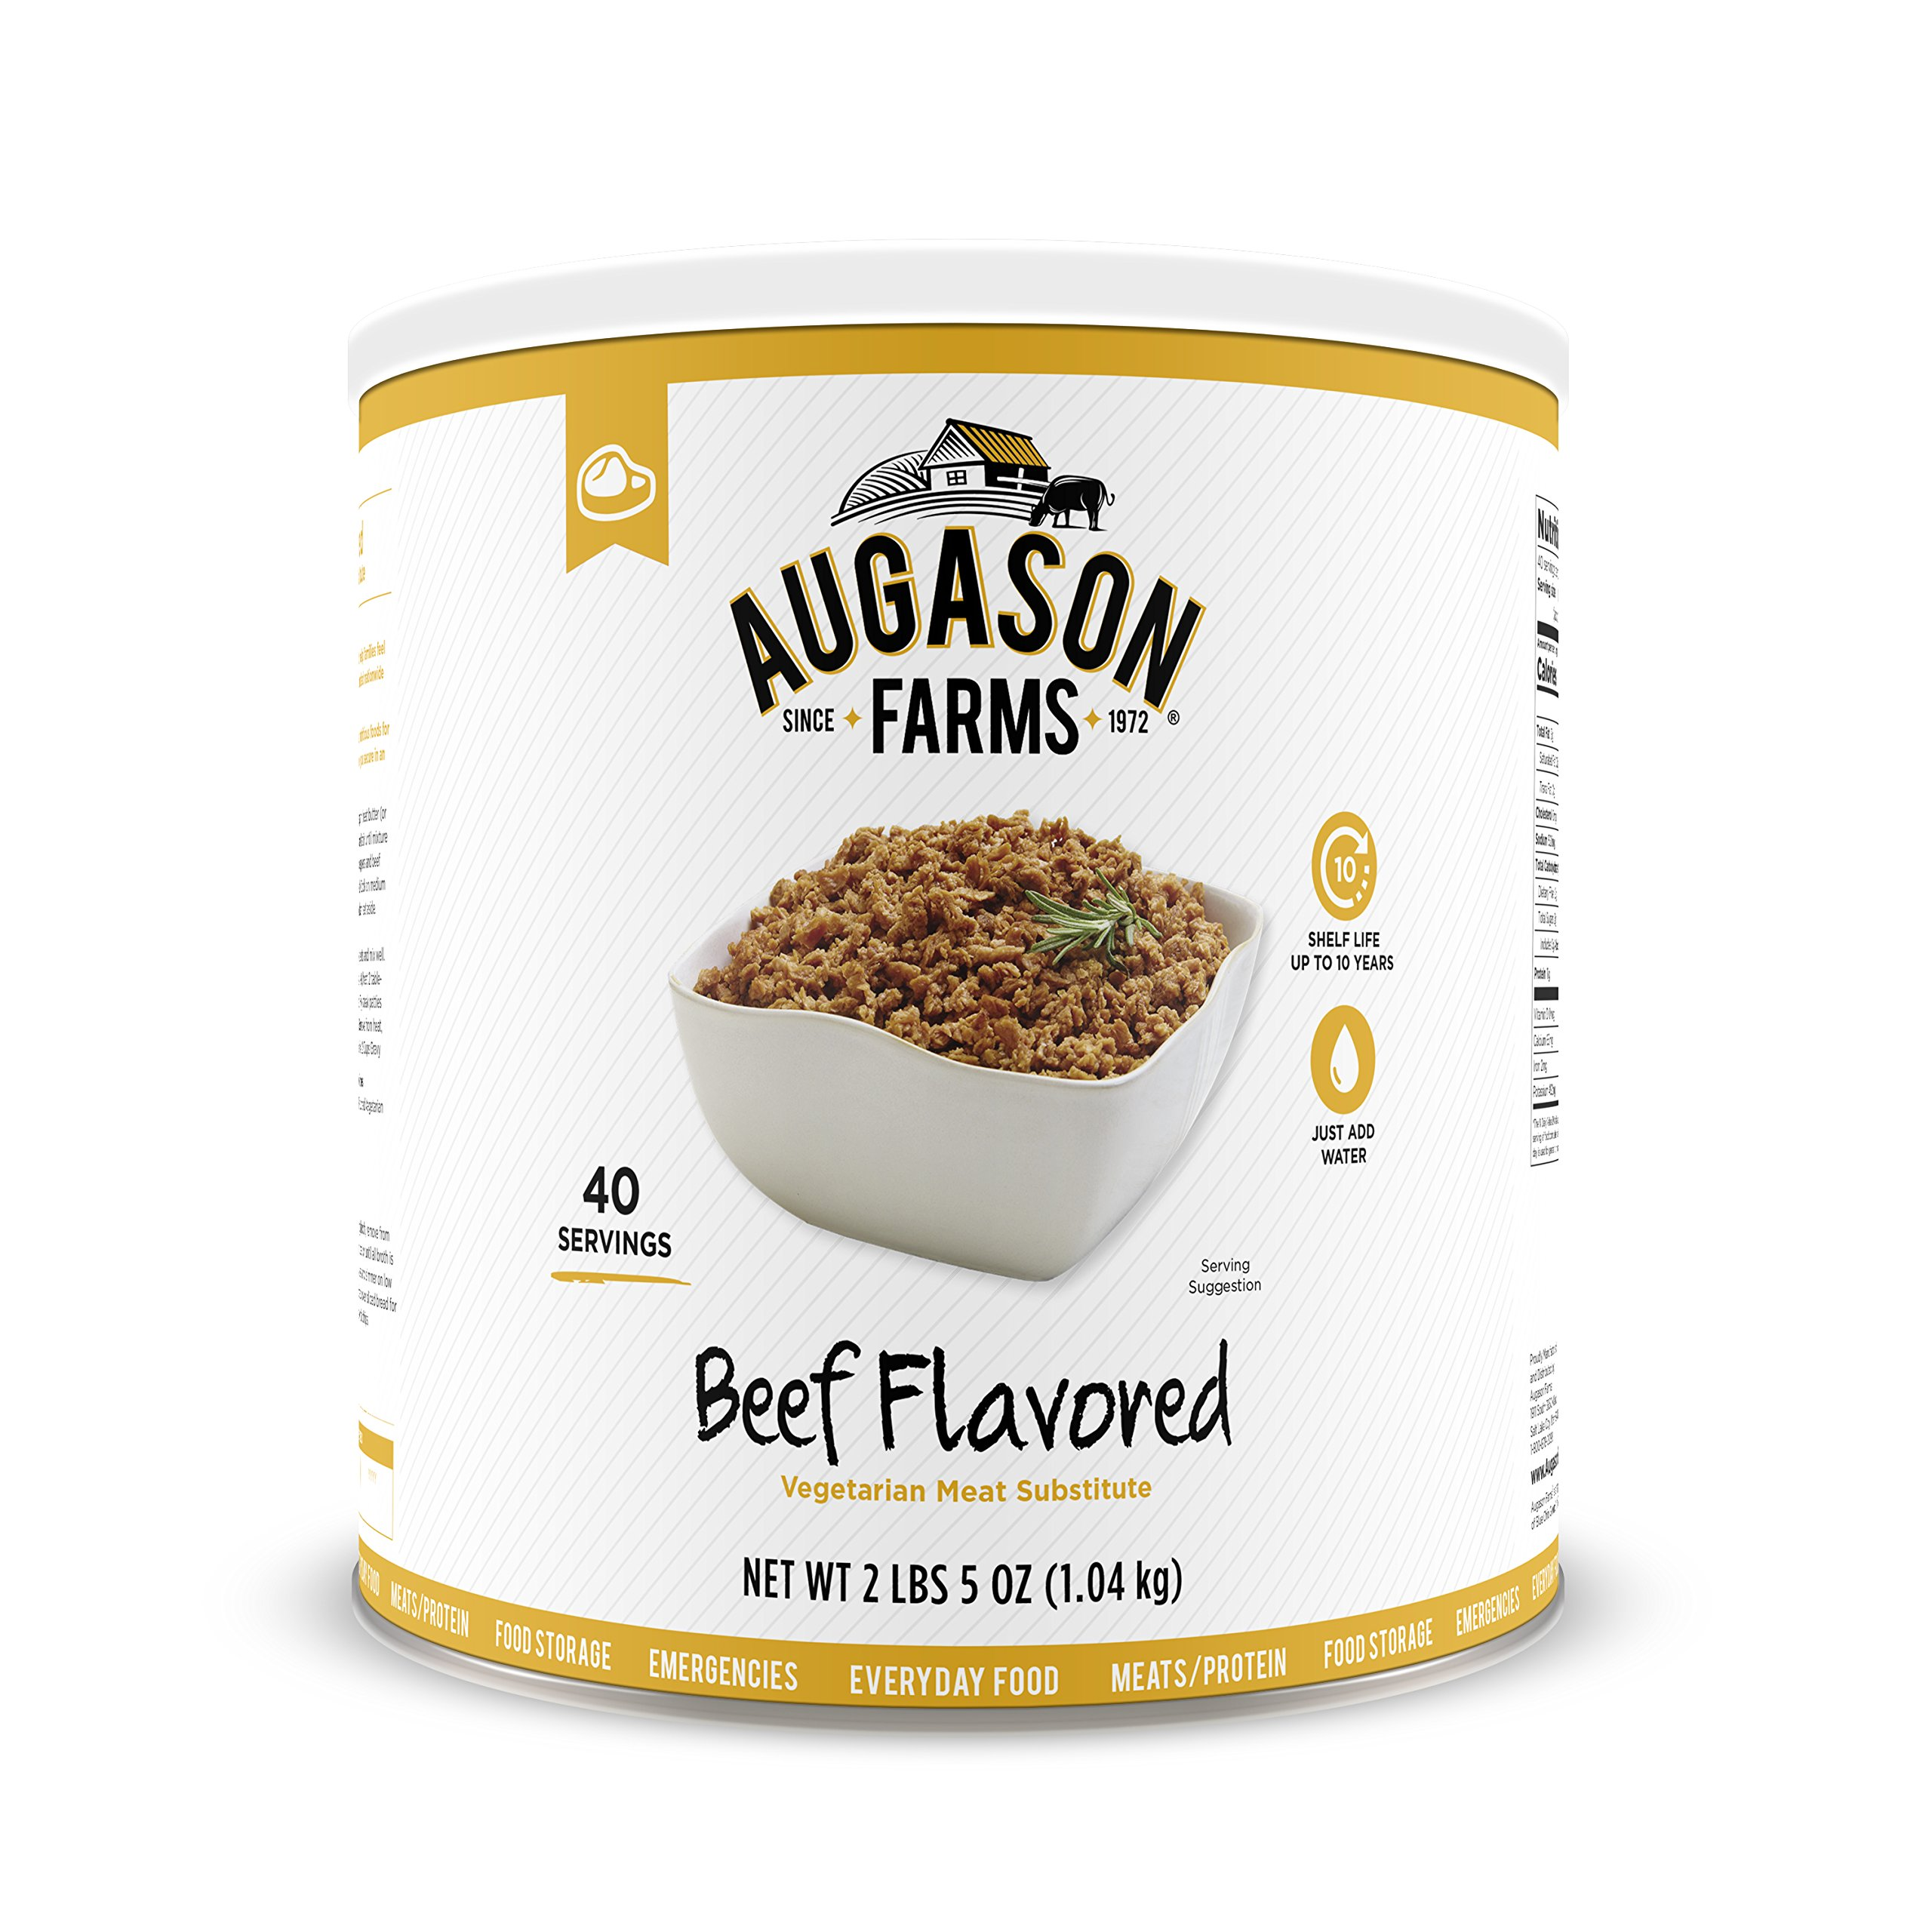 Augason Farms Beef Flavored Vegetarian Meat Substitute 2 lbs 5 oz No. 10 Can by Augason Farms (Image #1)